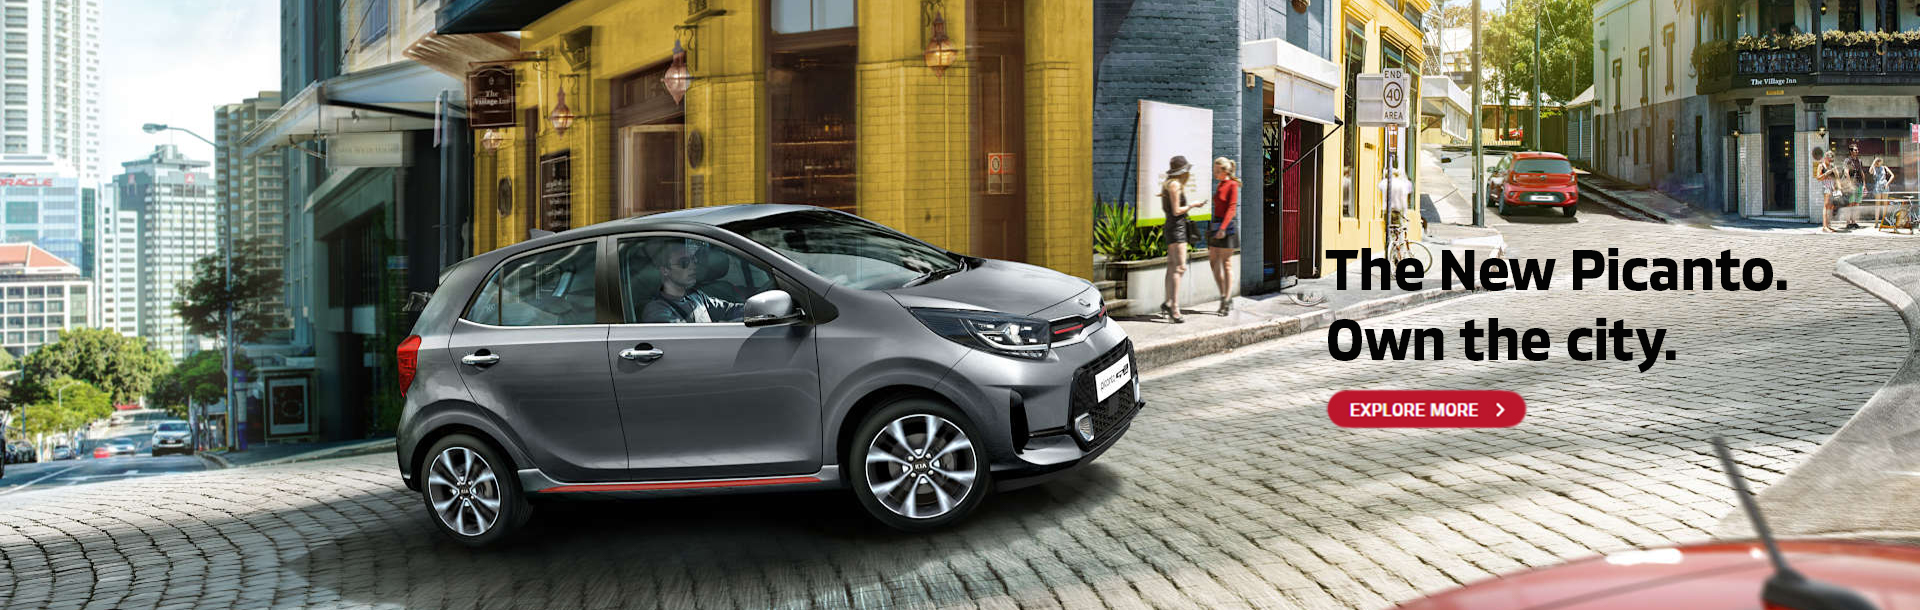 The all new Kia Picanto. Own the city. Explore more.